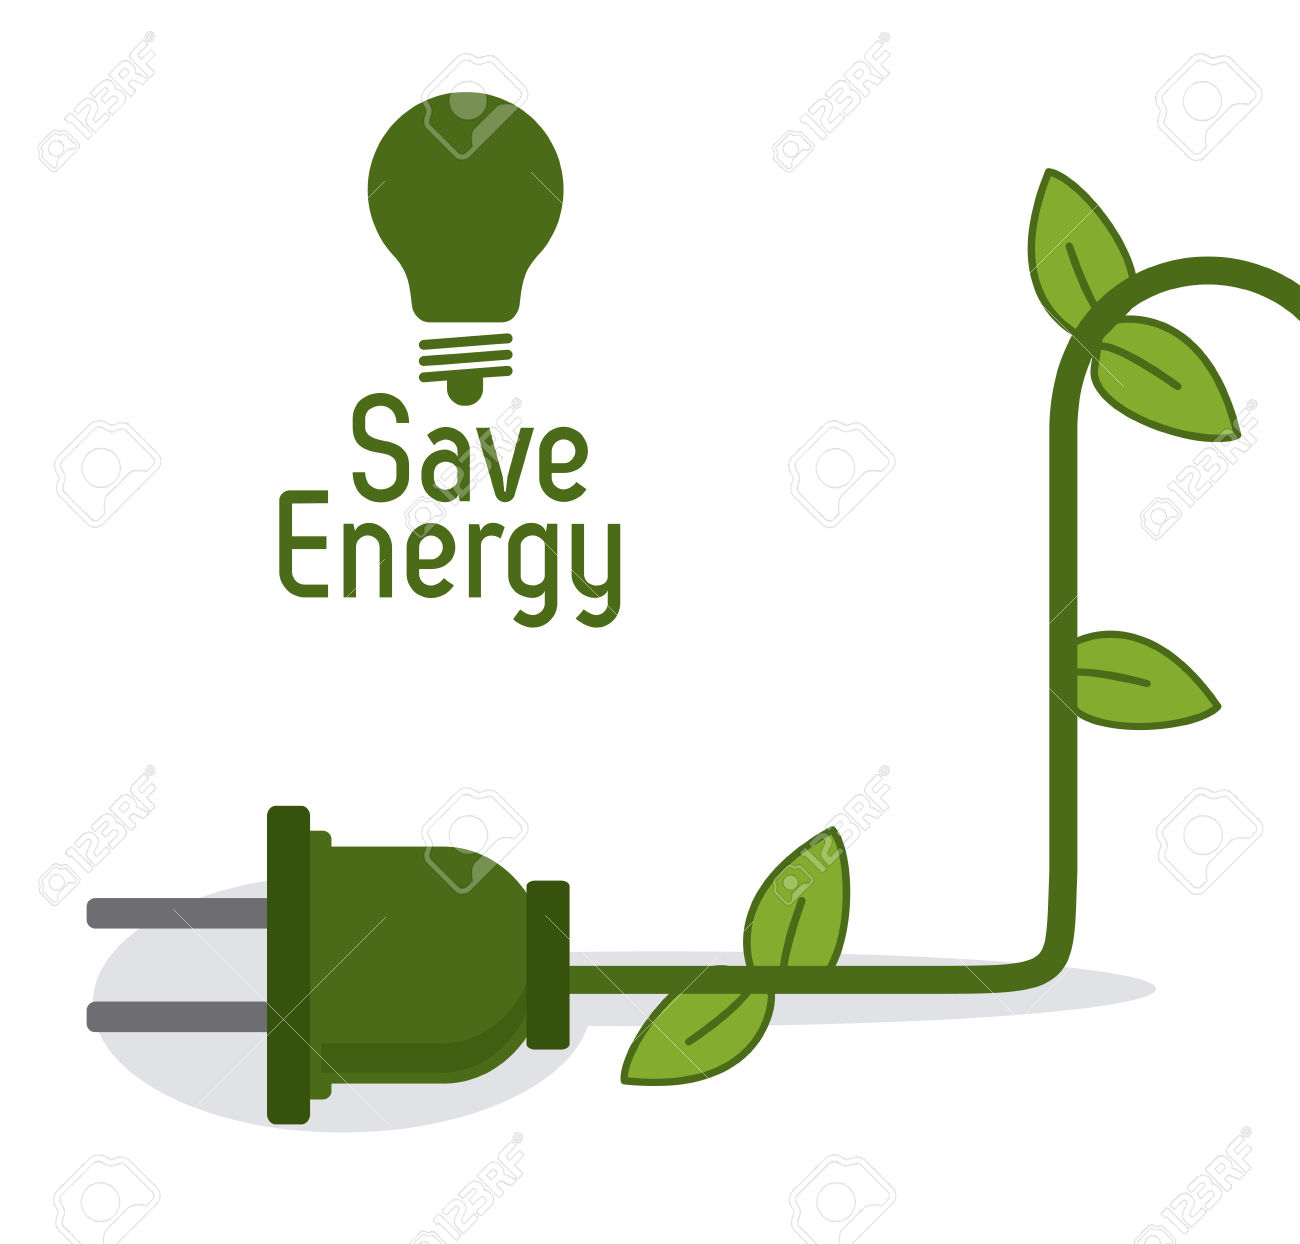 Save energy save environment clipart banner royalty free Save energy clipart - ClipartFest banner royalty free